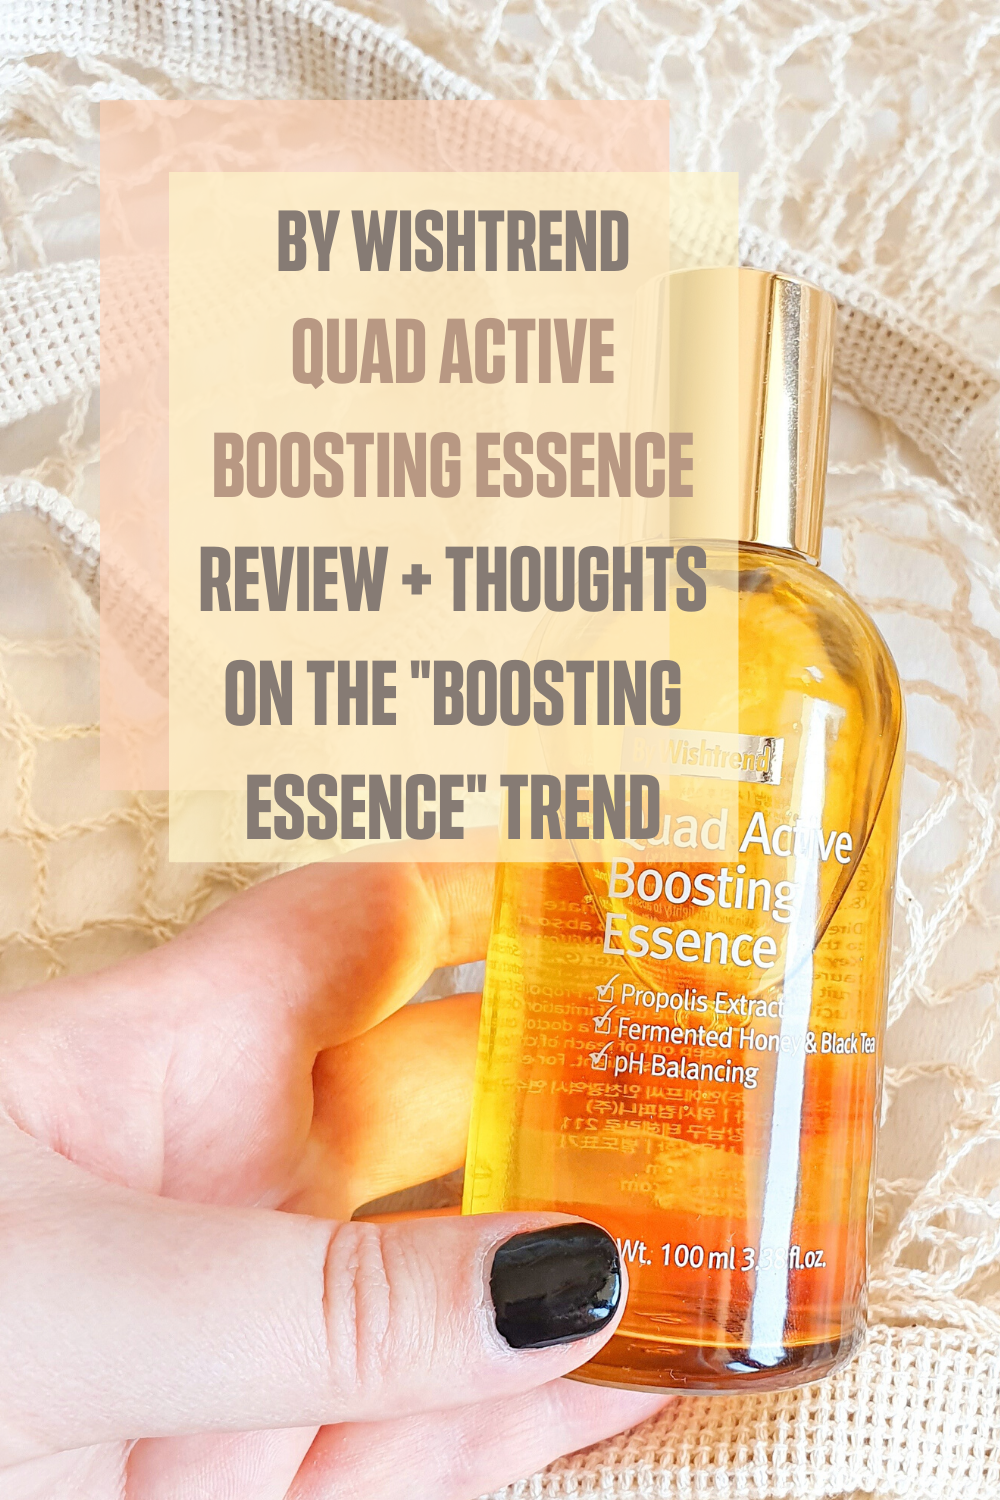 By Wishtrend Quad Active Boosting Essence Review